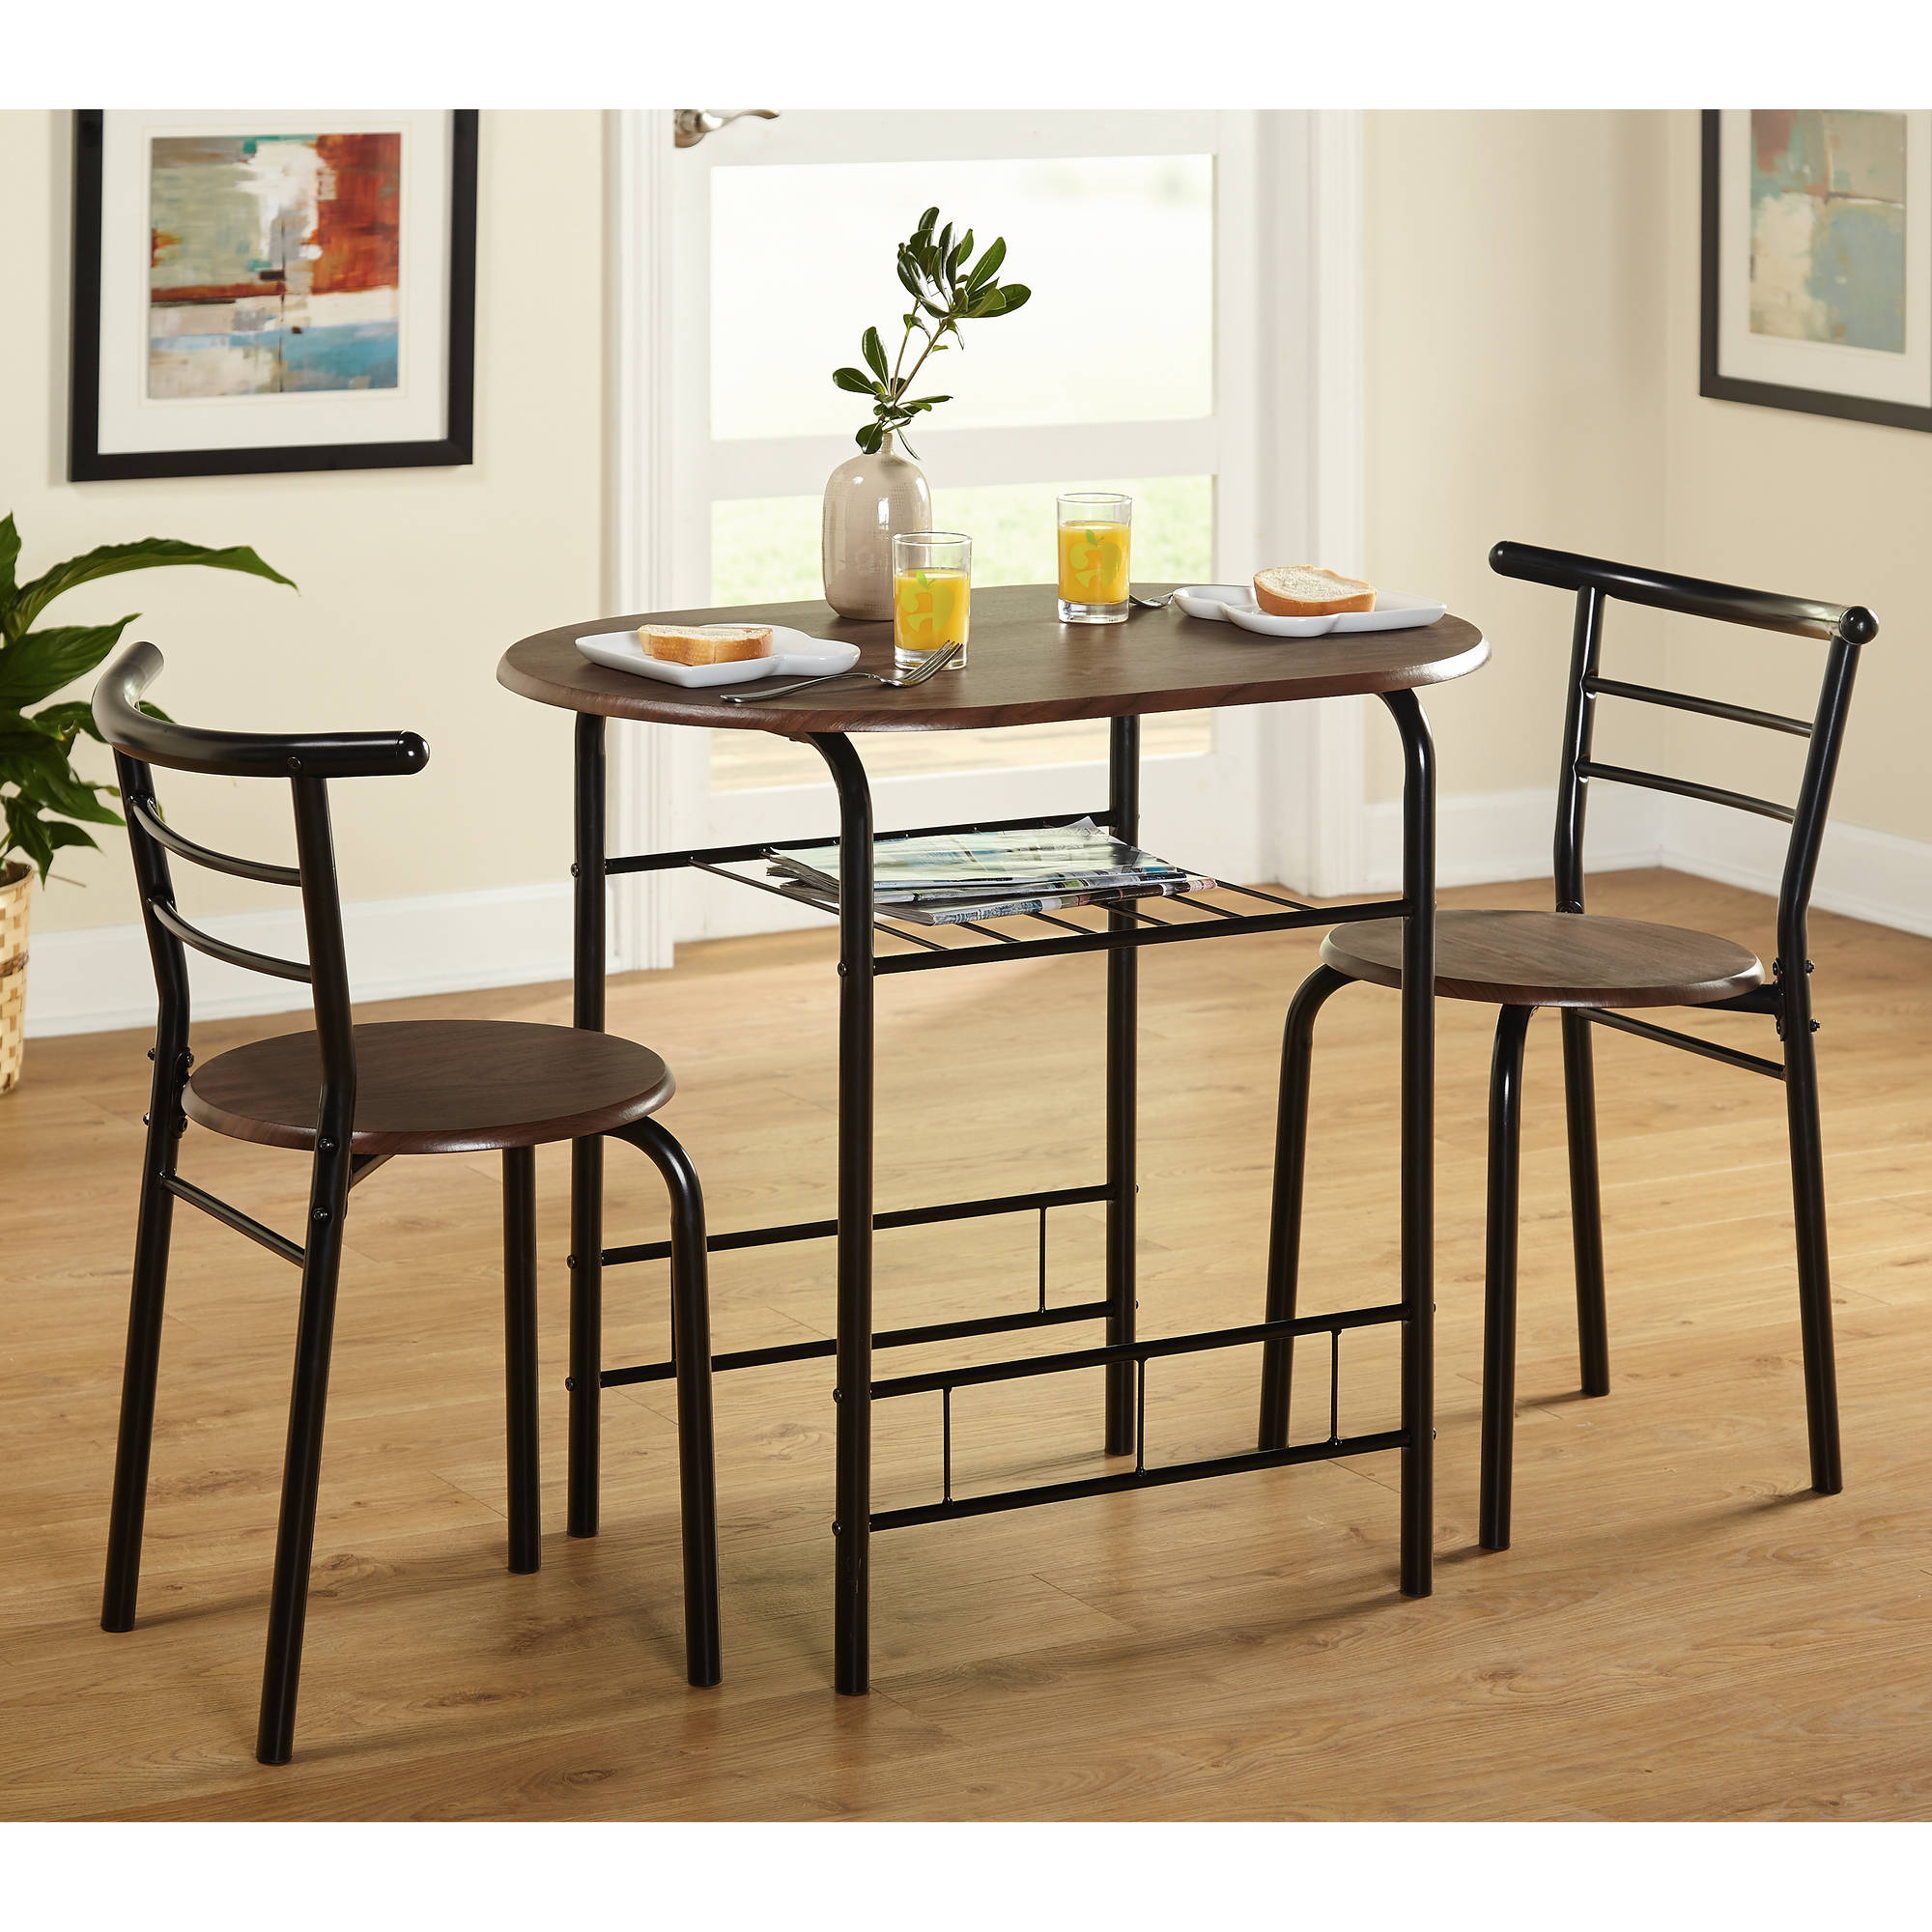 Tms 3 Piece Bistro Dining Set With Regard To Most Recent 3 Piece Dining Sets (View 6 of 20)